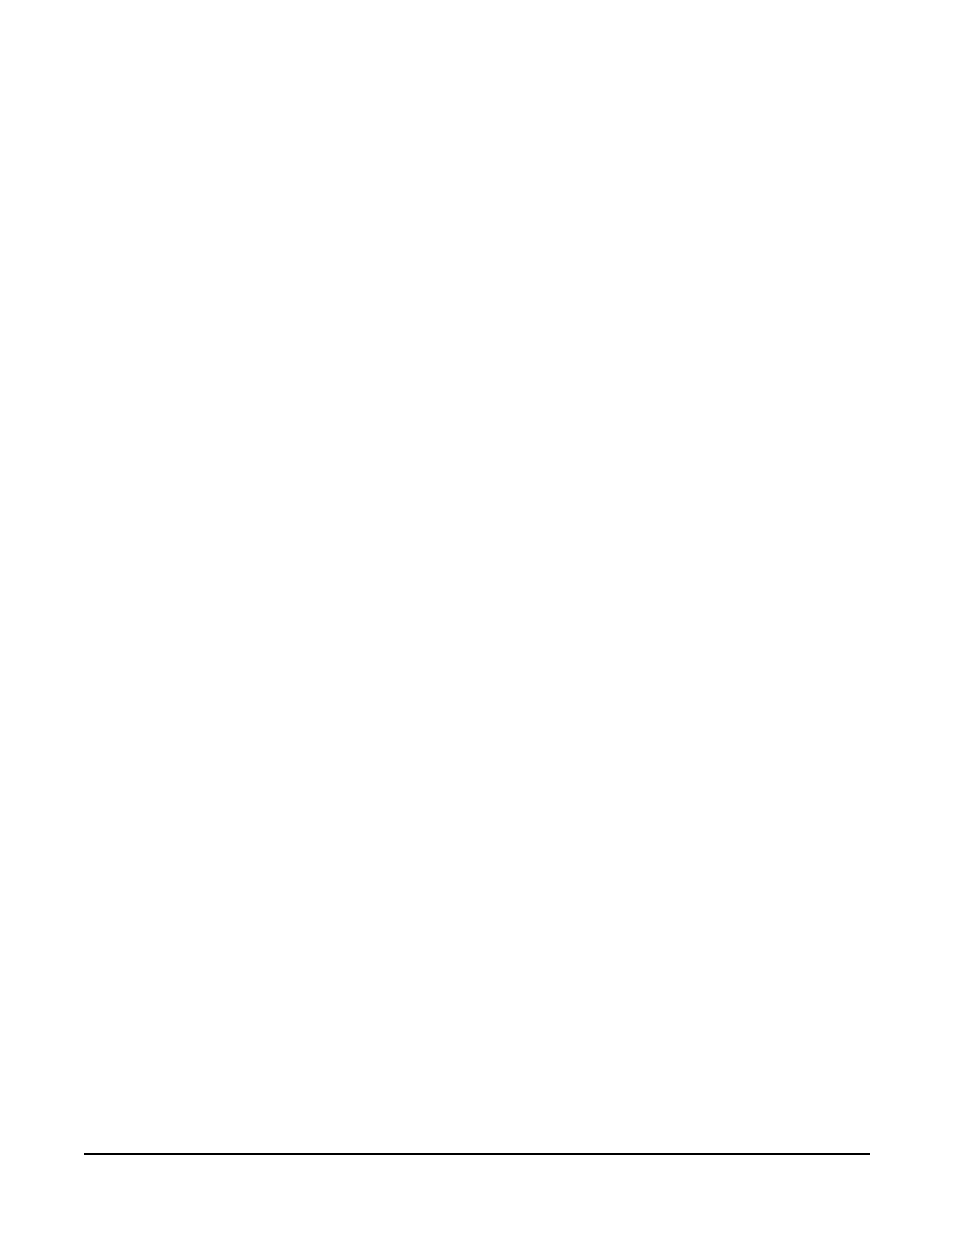 H&H Specialties 200 Series Track Installation Instructions User ...